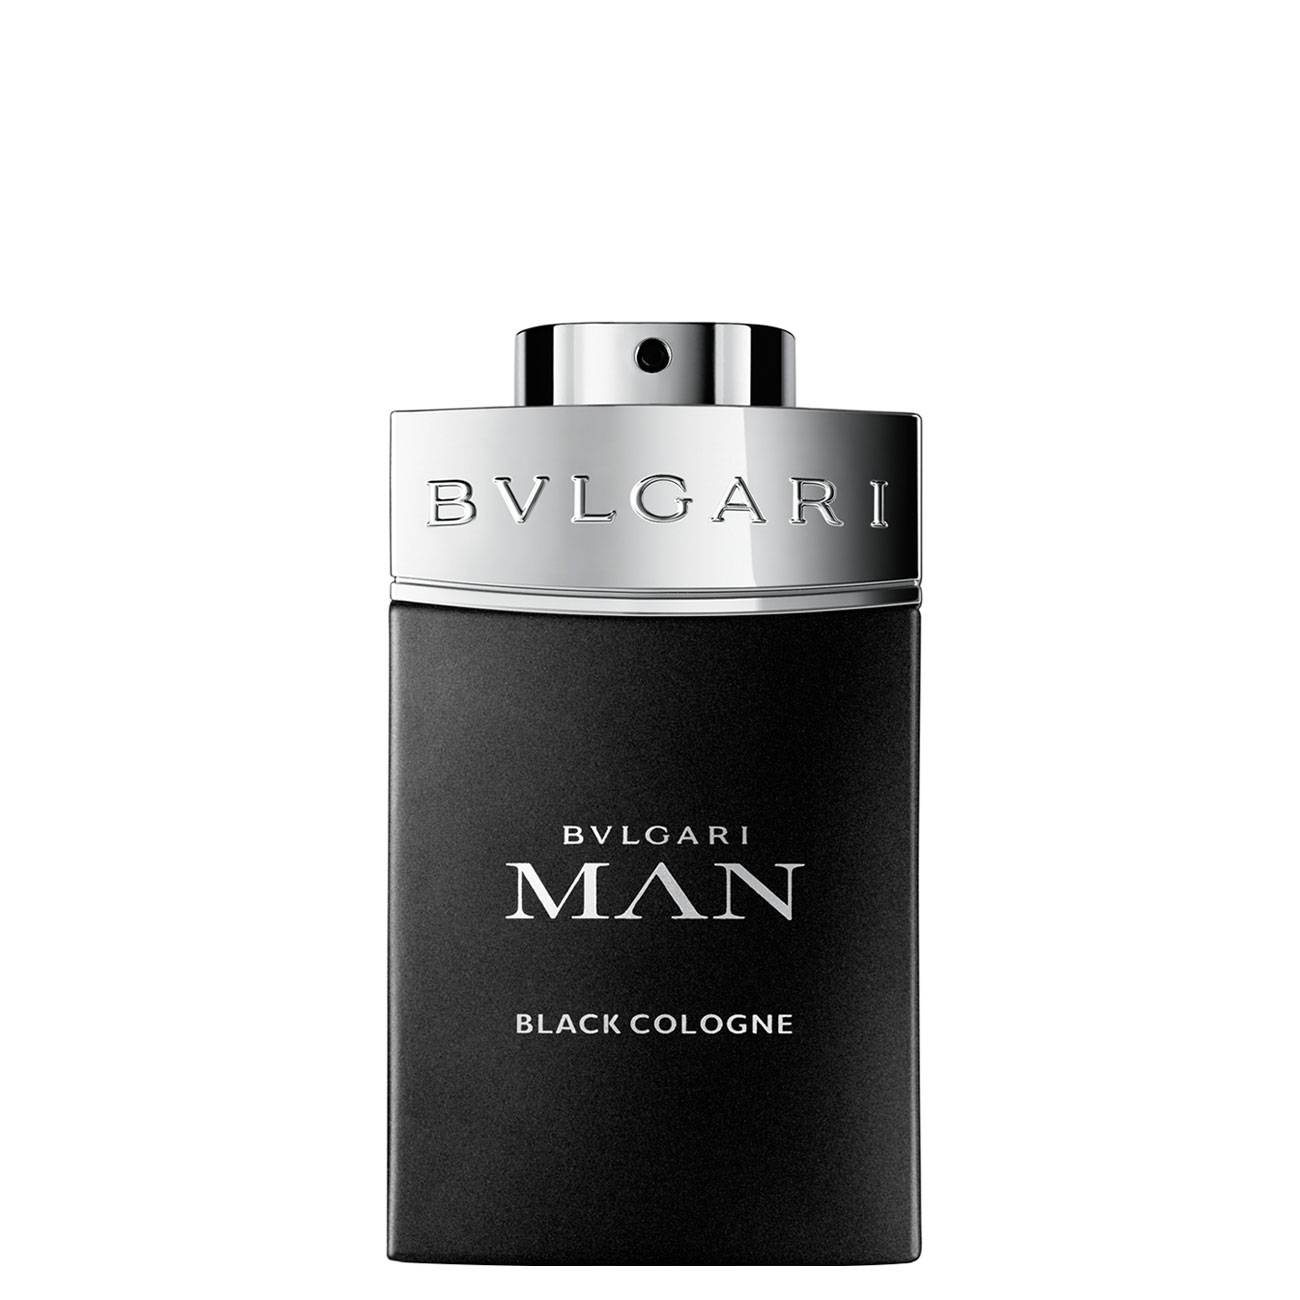 MAN BLACK EAU DE COLOGNE 60 ML 60ml poza